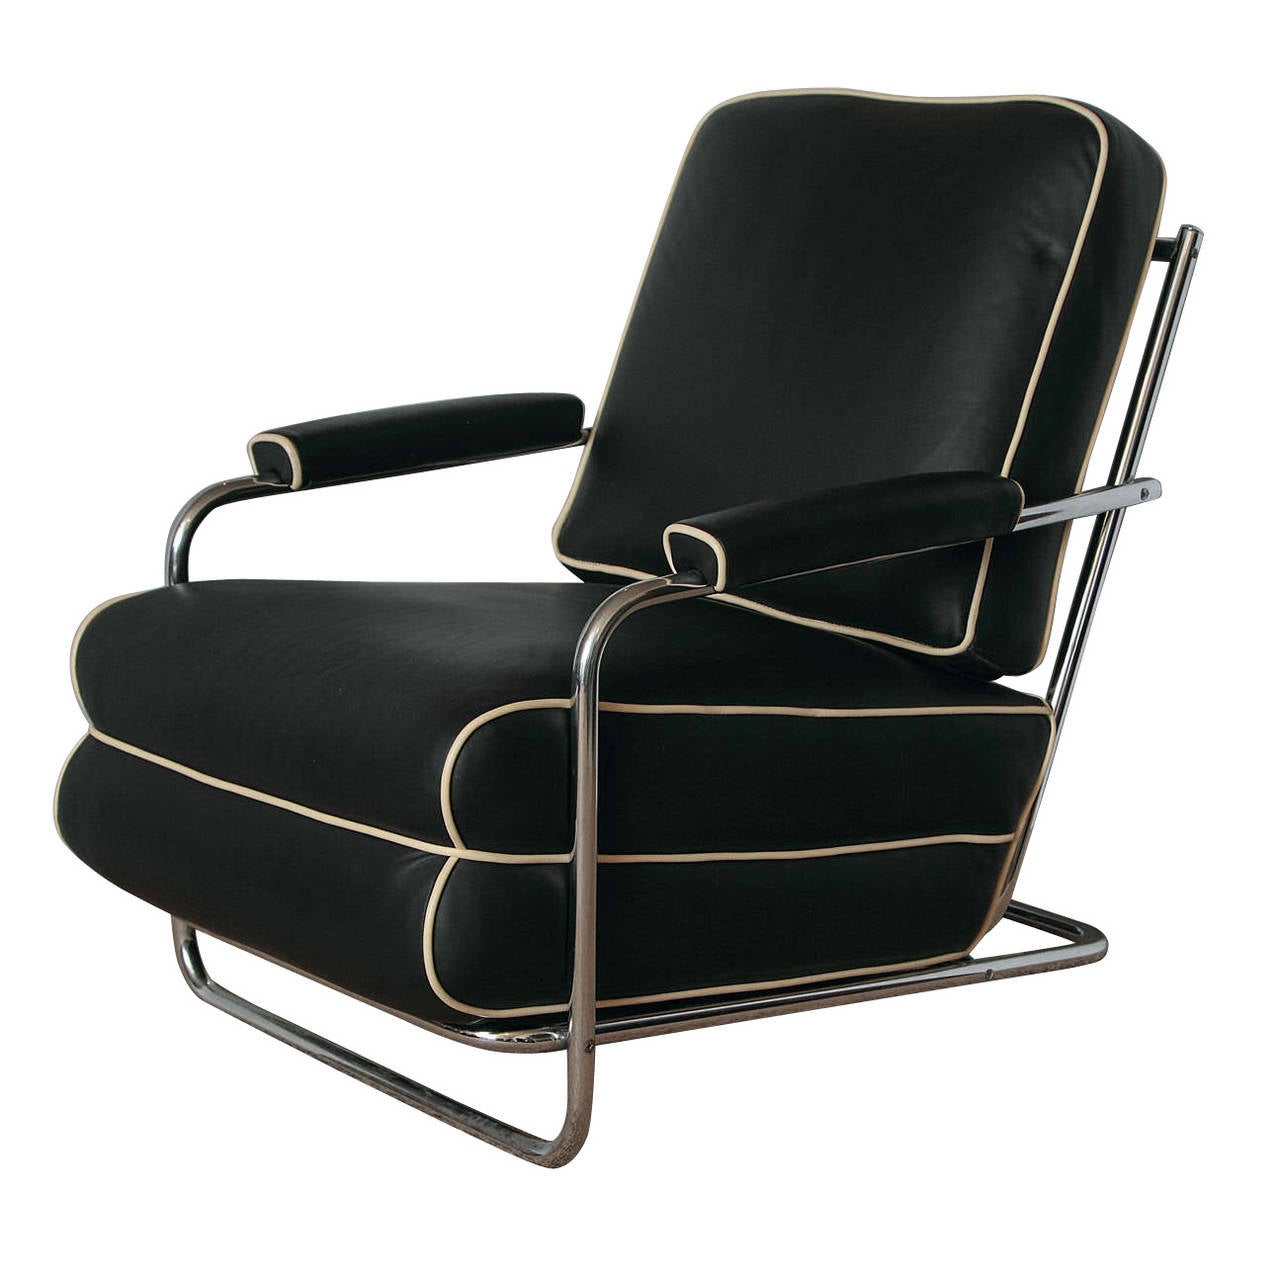 Amazing Gilbert Rohde Streamline Art Deco Lounge Chair For Troy Sunshade For Sale